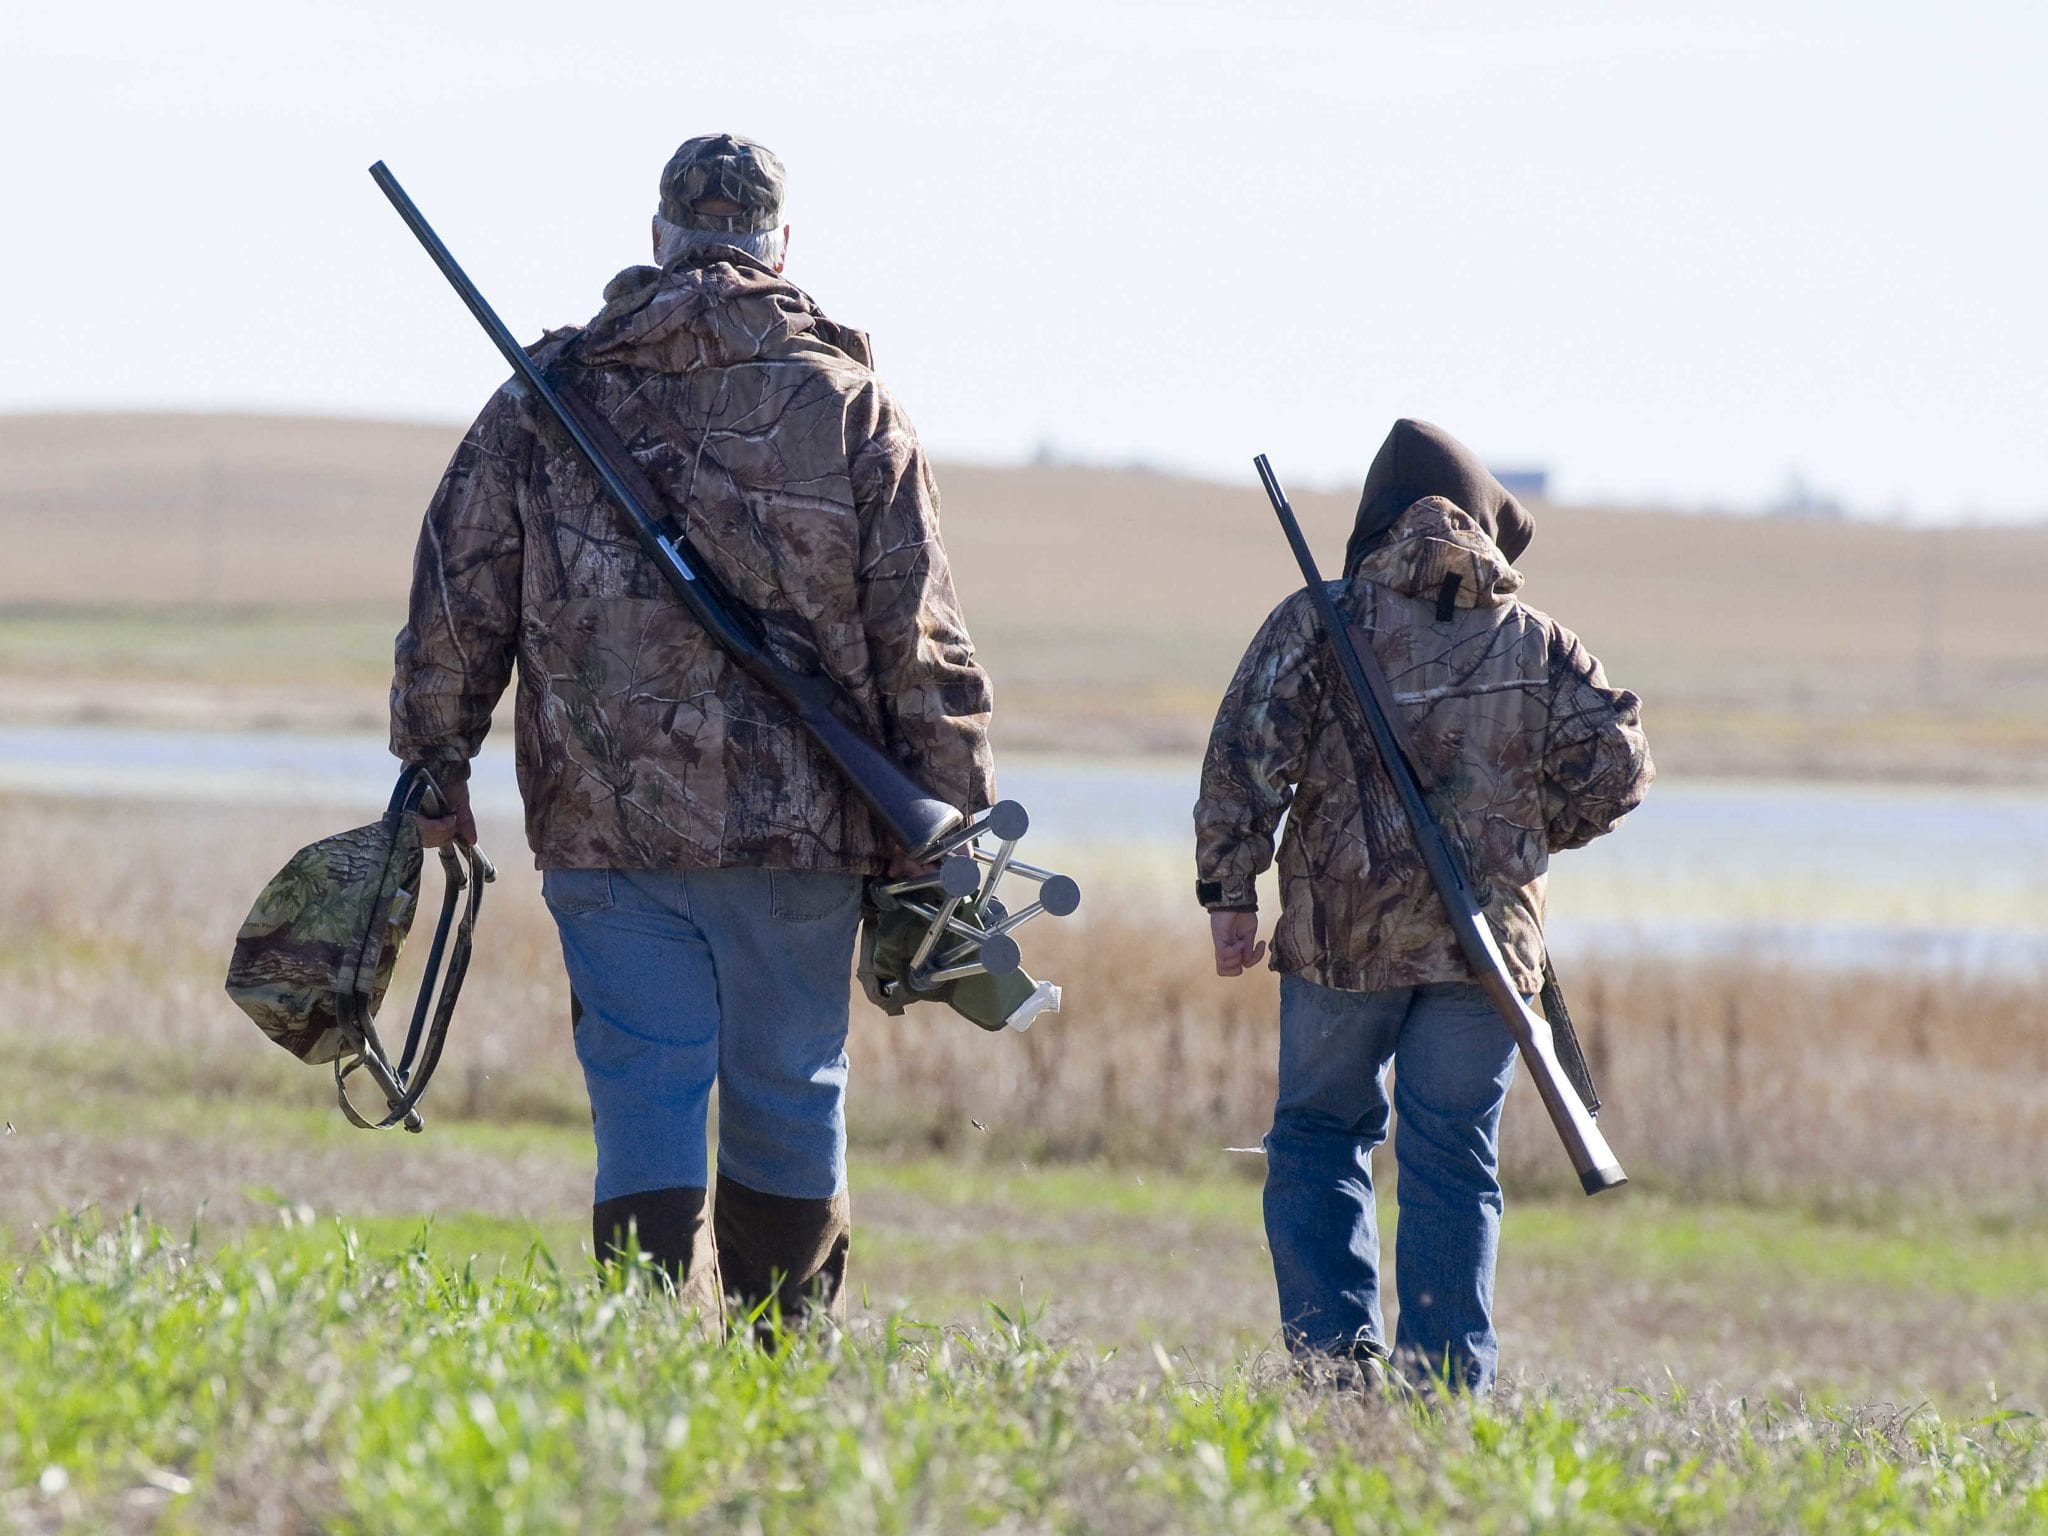 7 Ways to Manage Firearms When Hunting With Kids